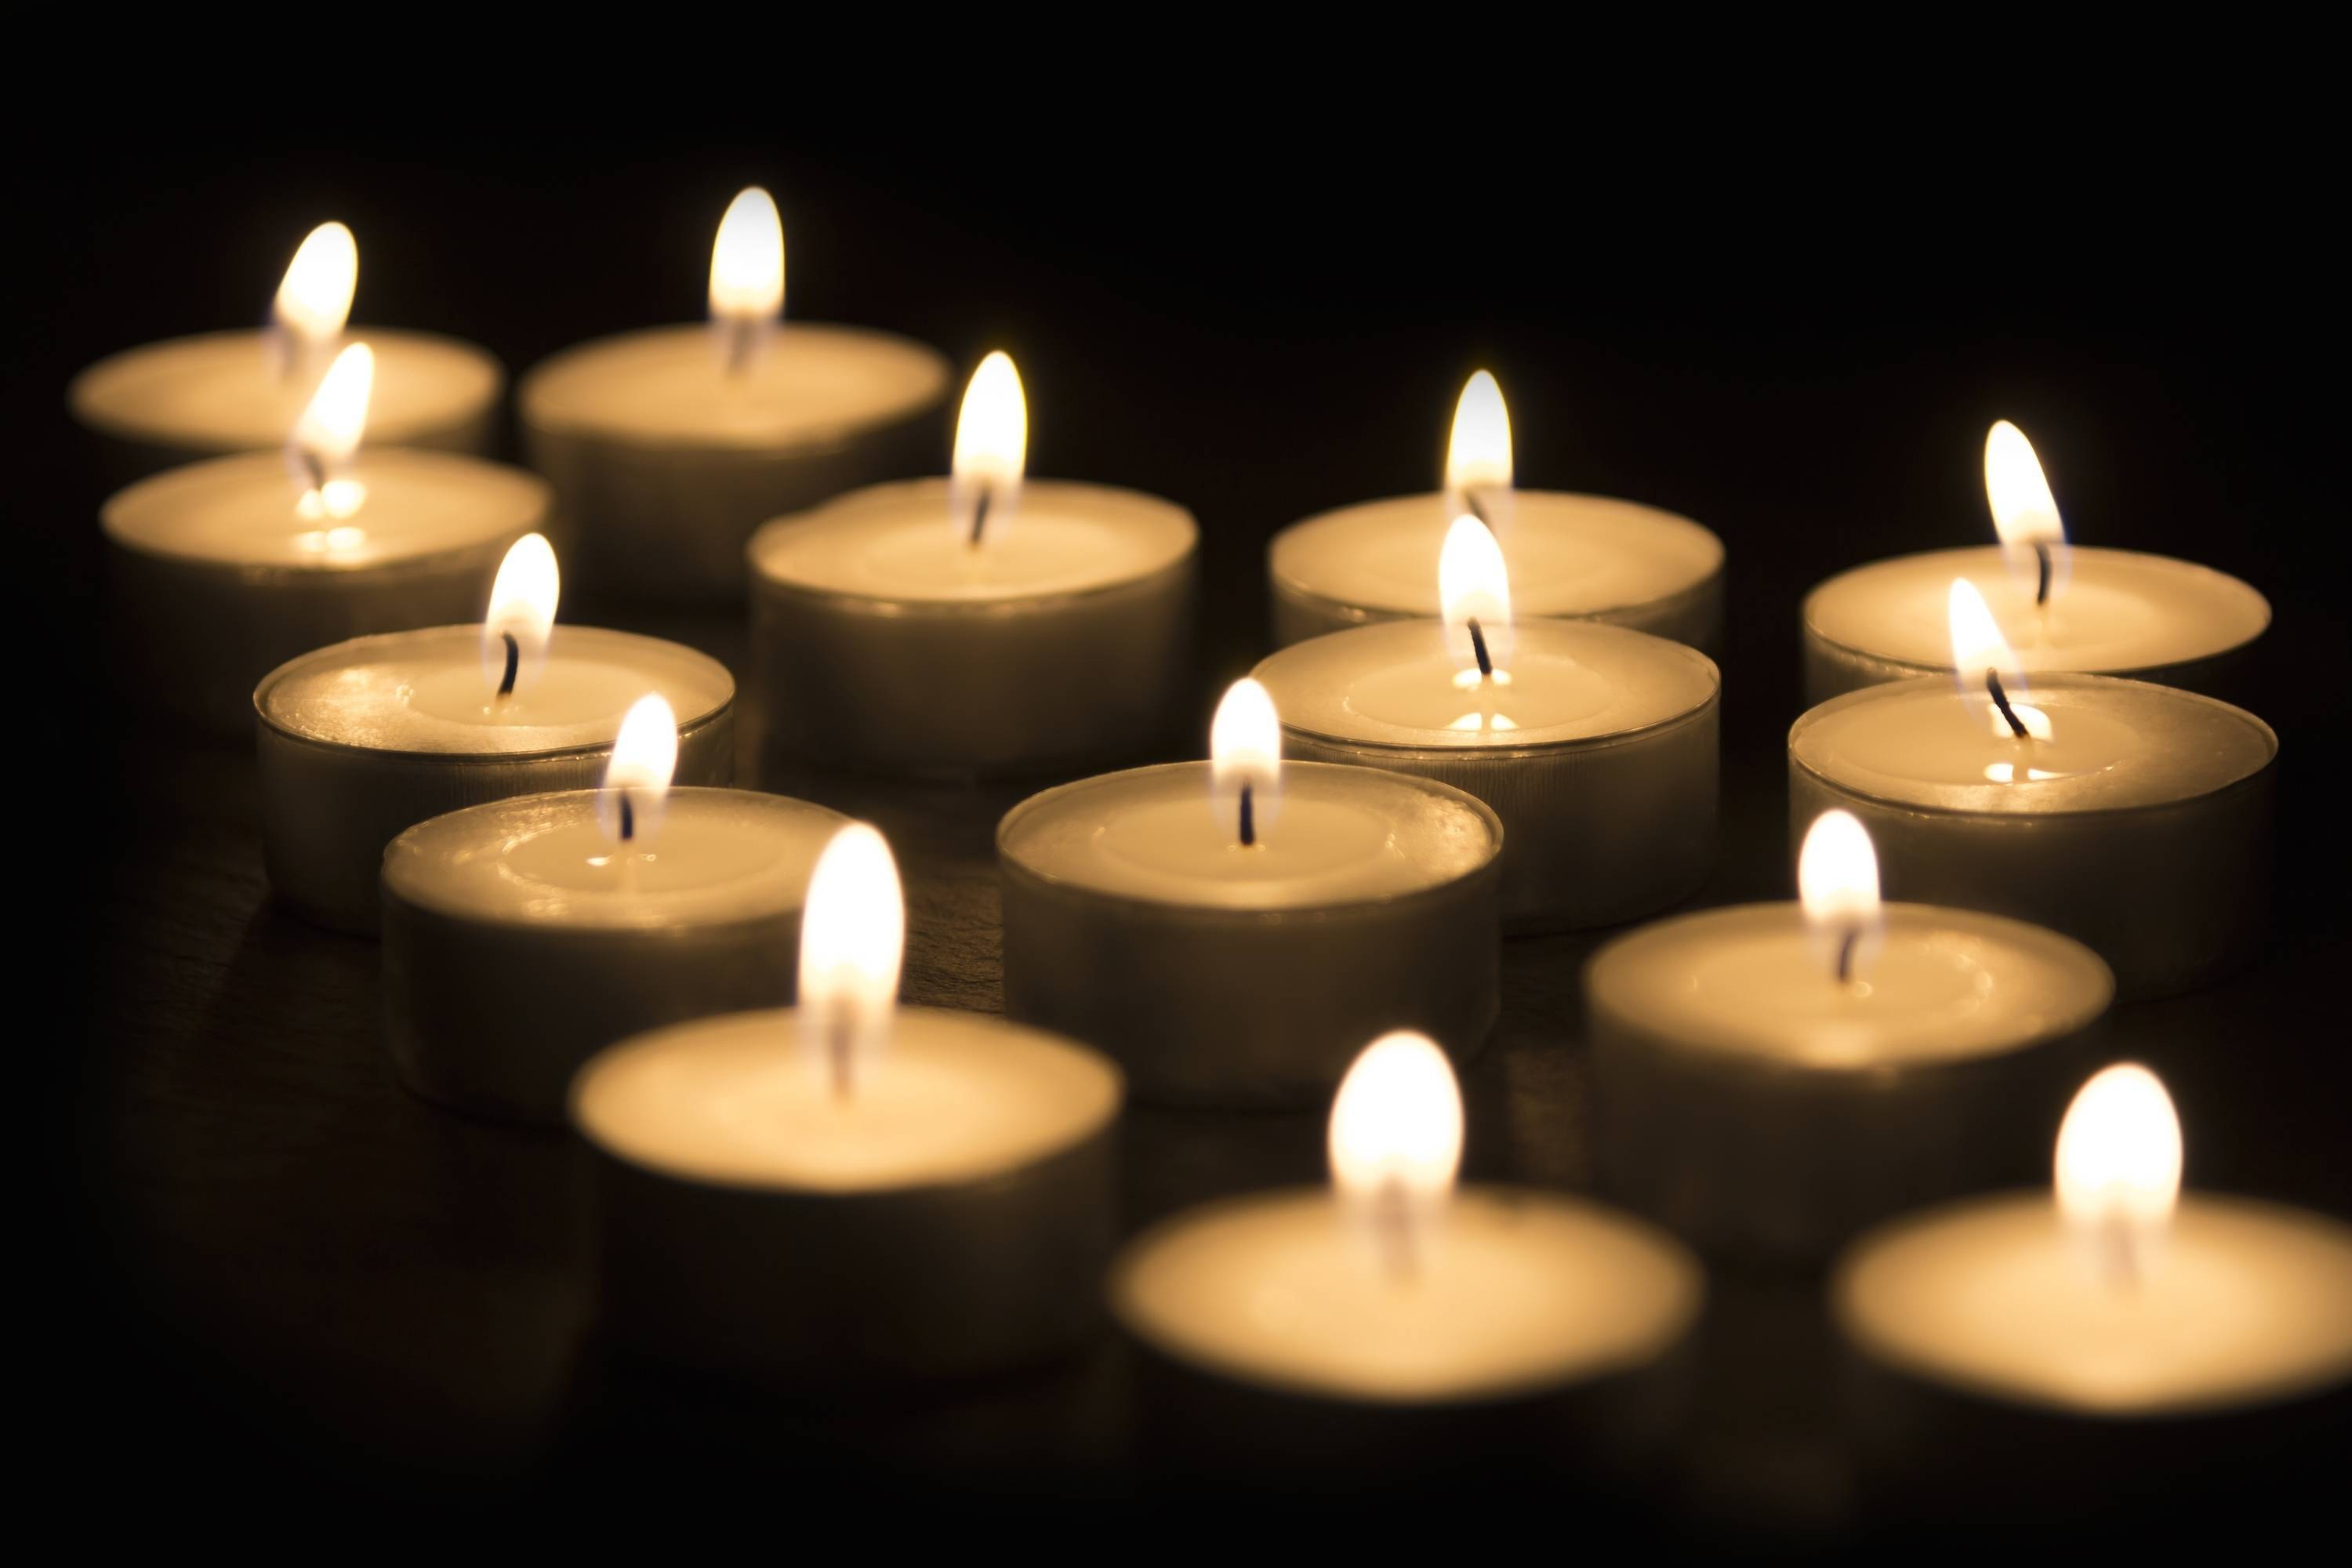 Obituary: John Daniel Dwyer V, 12 years young, of Montclair